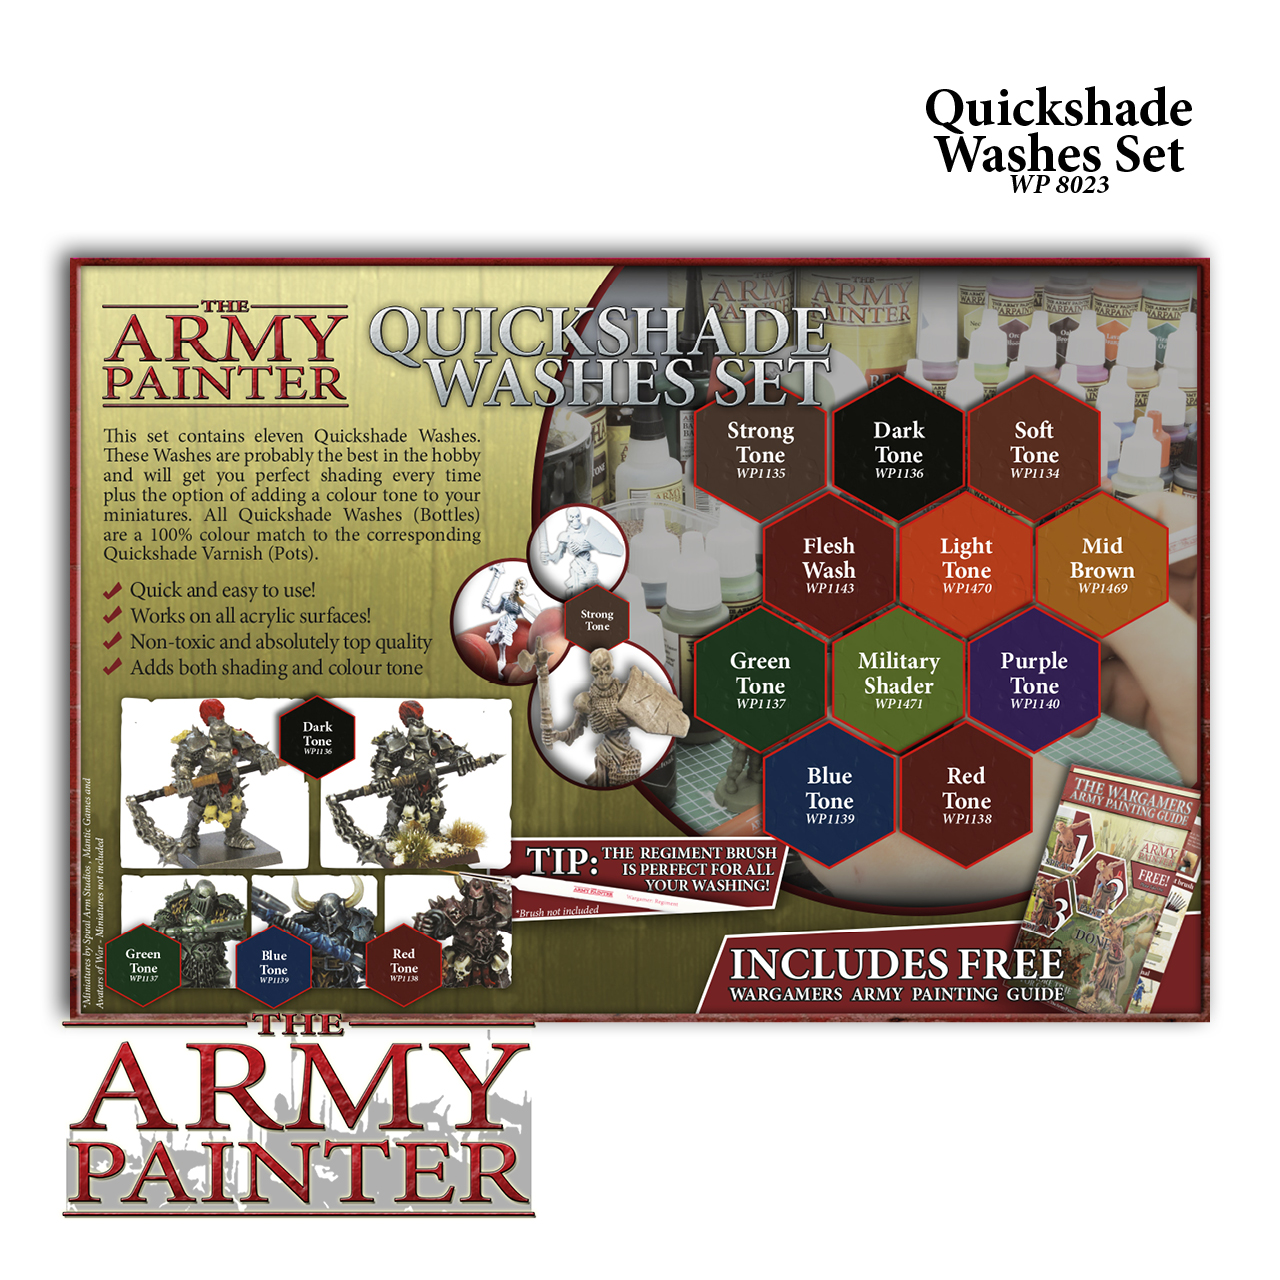 Quickshade Washes Set (Army Painter)